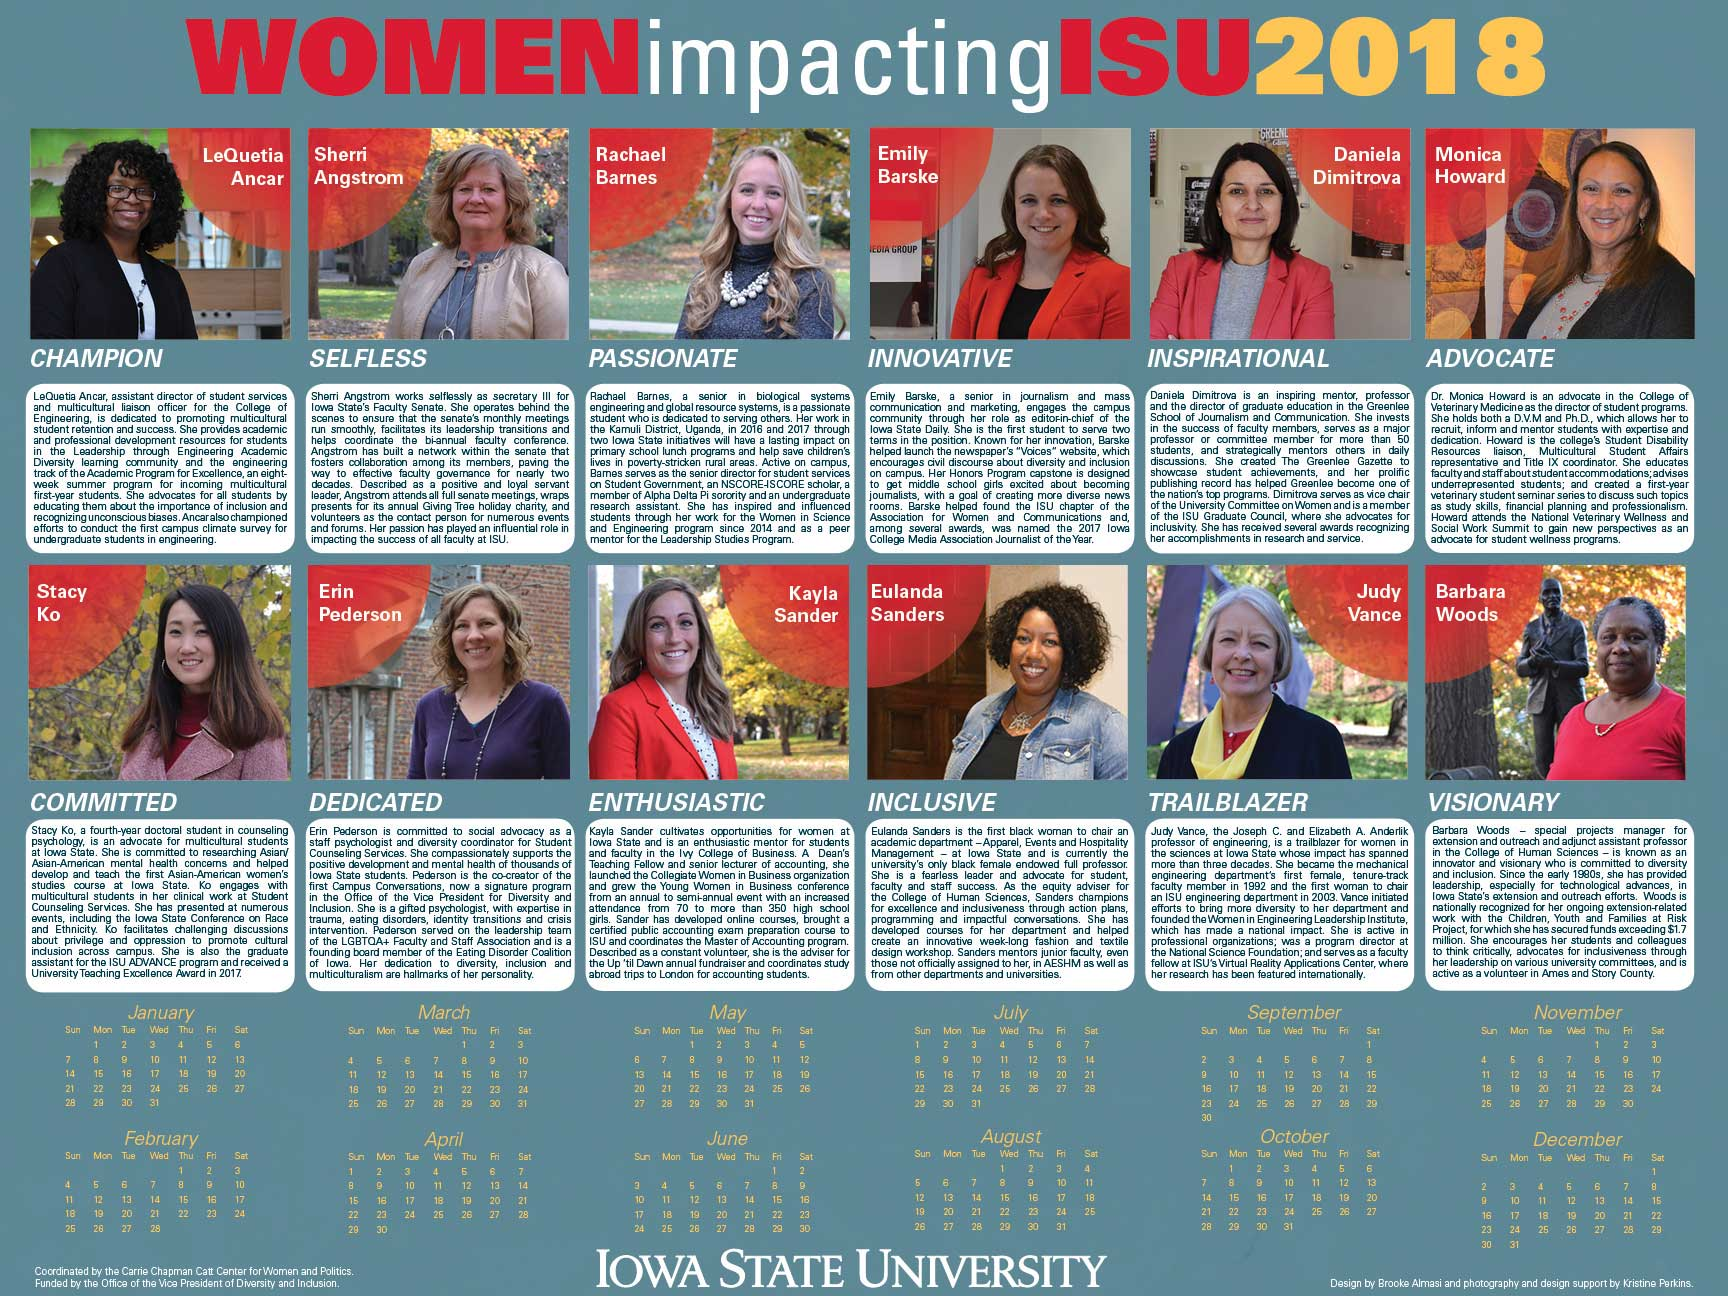 2018 Women Impacting ISU calendar